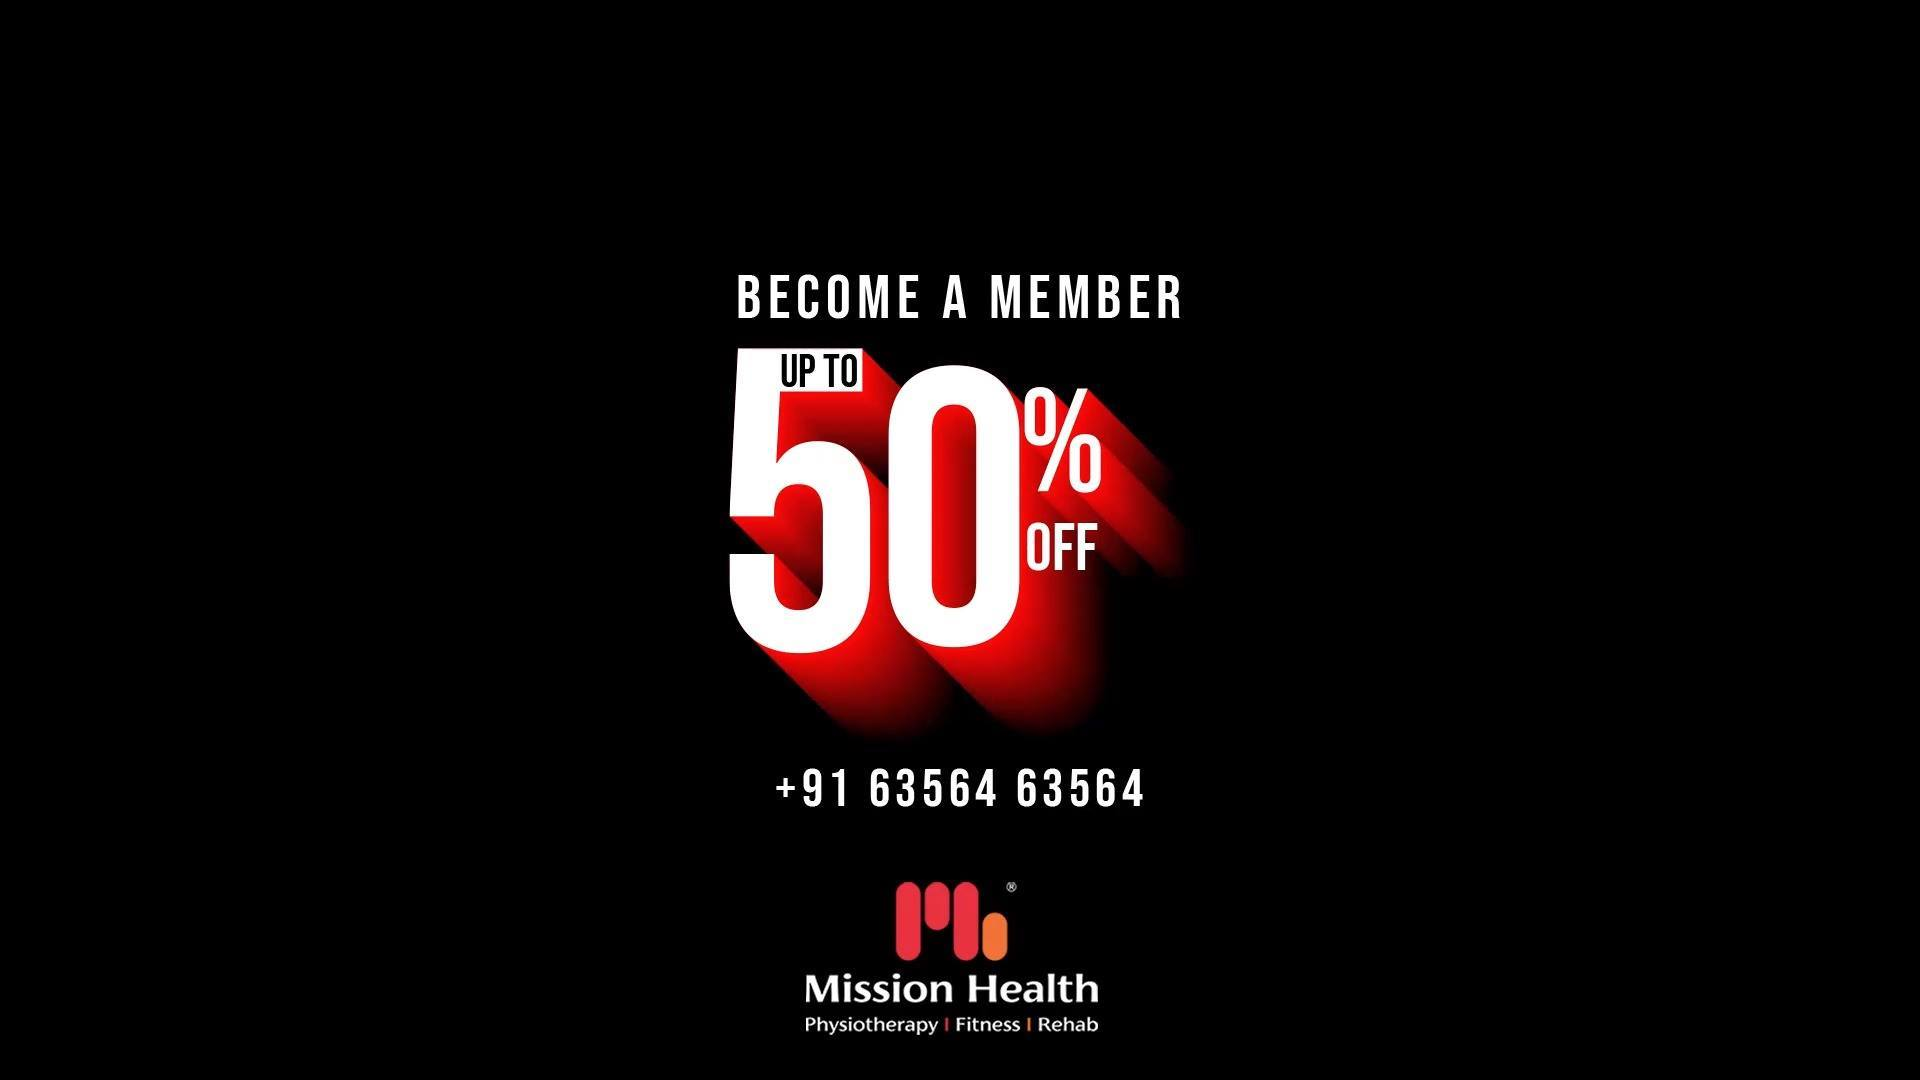 Winter will try to get you engulfed into its lazy vibes & cozy tentacles but you ought to beat and defeat it upright! Do not make any compromise with your fitness regimes.  Win over the winter blues; grind and sweat to stay in shape till the fitternity with #MissionHealth.  Get closer to your health regime and fitness goals before the year ends because the world class fitness center is now offering note-worthy fitness packages to set the standards of fitness higher. To make the group fitness activities more engaging and lucrative, special offers are designed. Understanding that every human is uniquely different, customized slimming services will be offered by the expert trainers. There are discounts on family fitness packages because fitness is for all. We are also offering cross-fit training for the cross-fit enthusiasts that will help them to burn calories more easily and become stronger. Then we also offer the immunity boost-up plans for individuals that are customized and personalized. Besides all these we provide personal training sessions that will guide you to become a better version of yourself. Hear the ring of fitness & bring a buddy to accomplish your health missions and fitness visions together with fraternity.  Choose to be a member of Mission Health's world-class fitness center!!! Mission Health Helpline number: +916356463564 www.missionhealth.co.in  #MissionHealth #Fitness #PersonalTraining #FatToFit #Transform #GroupFitness #Slimming #MovementIsLife